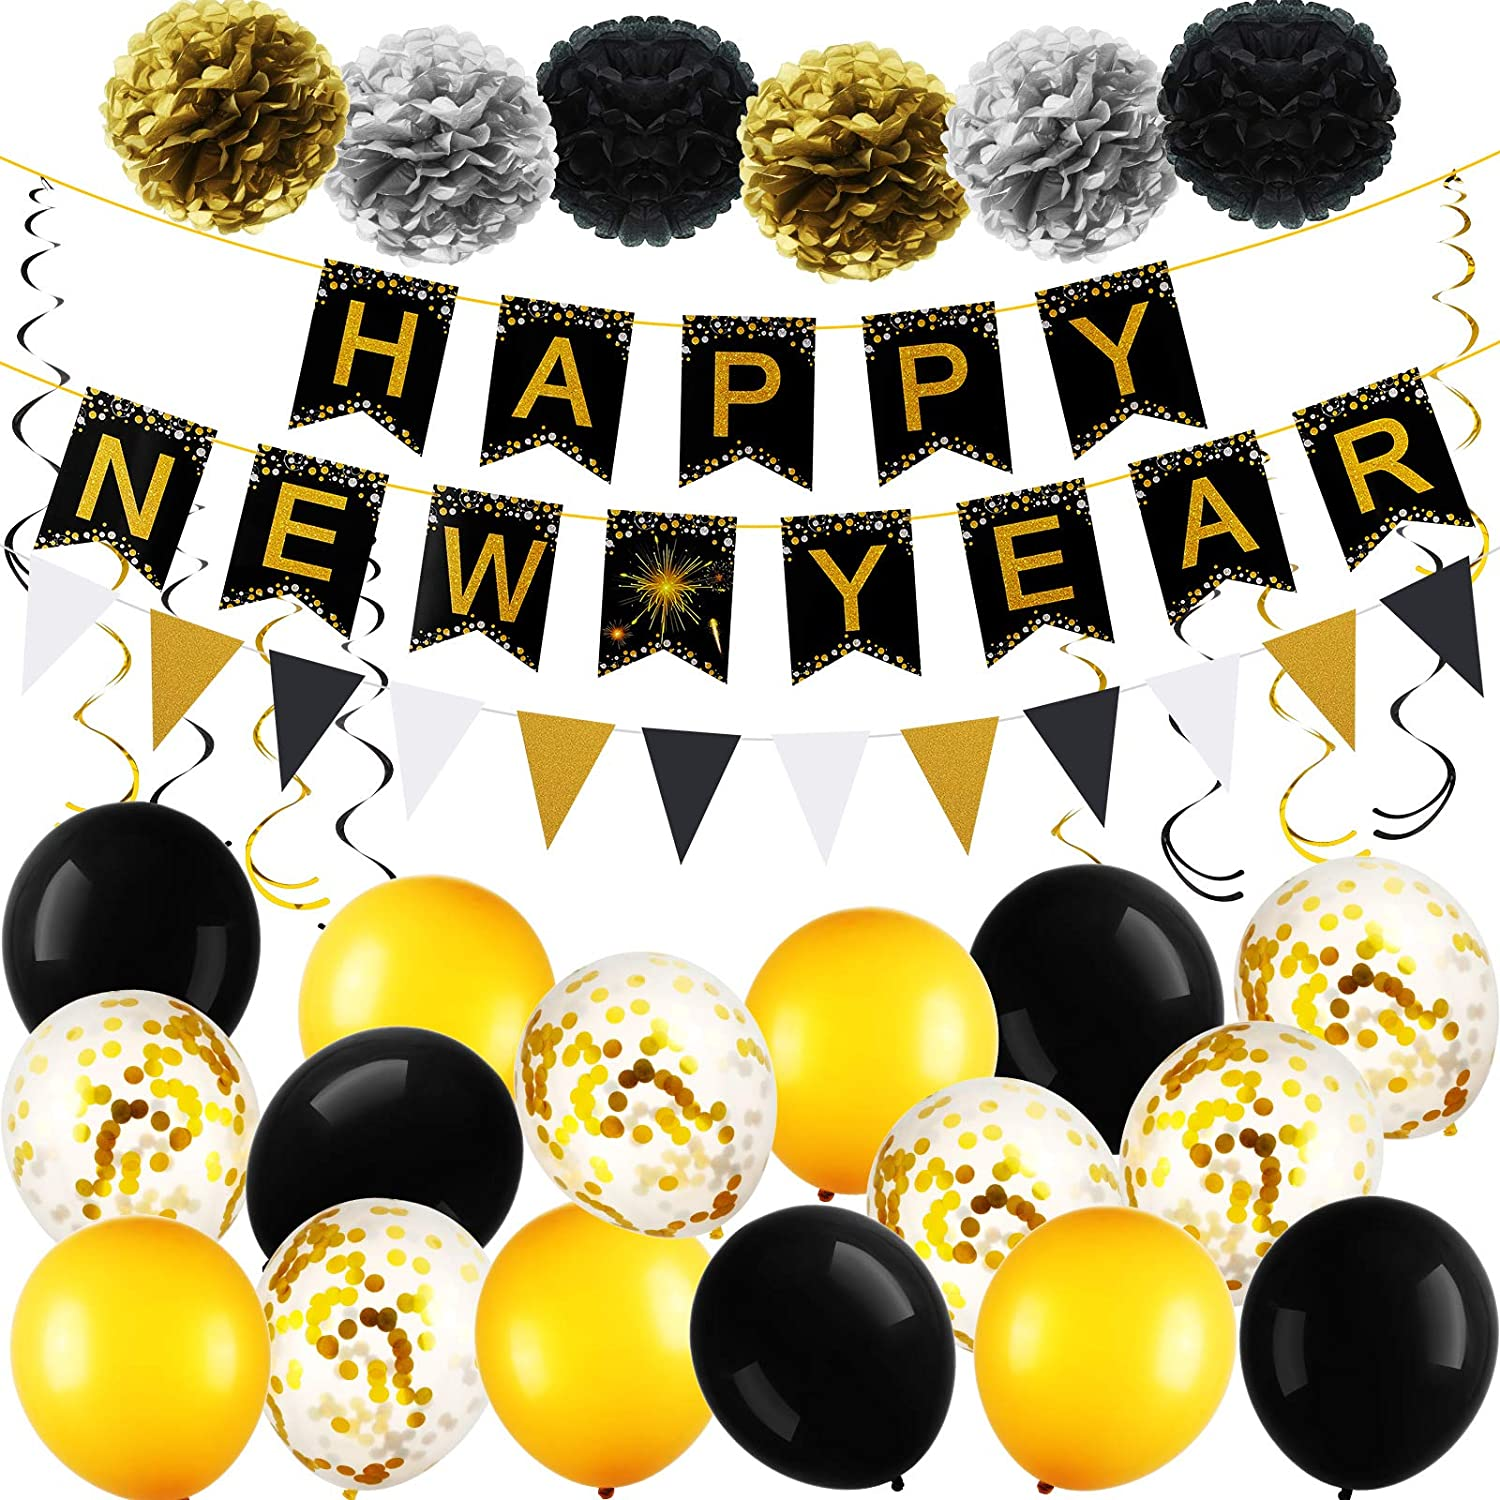 Happy New Year Party Decorations Kit 2021, New Years Eve Party Supplies 2021, Happy New Year Banner Latex Balloons Paper Ball Flower Black and Gold for New Year Party Decorations